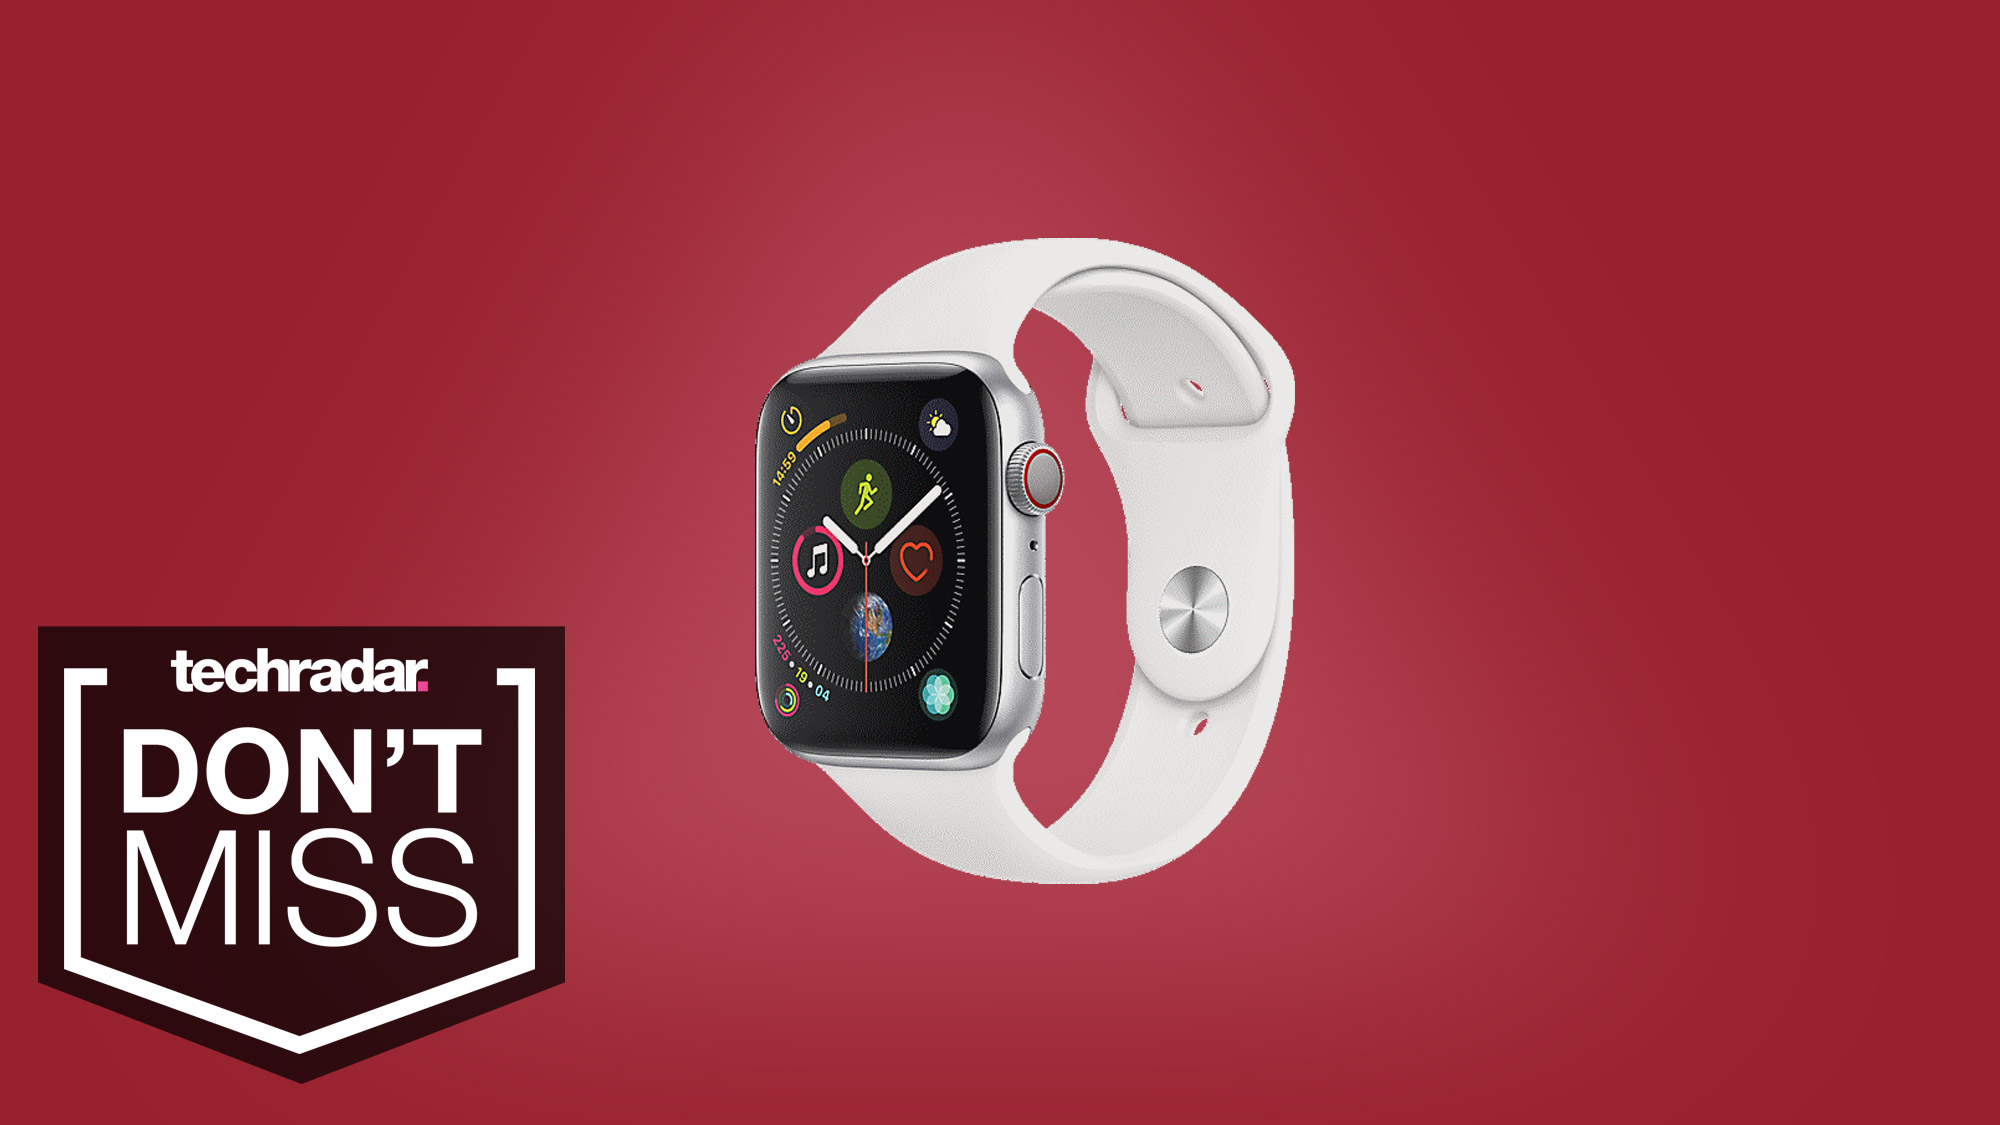 Apple Watch sale at Best Buy: save $100 on the Apple Watch 4